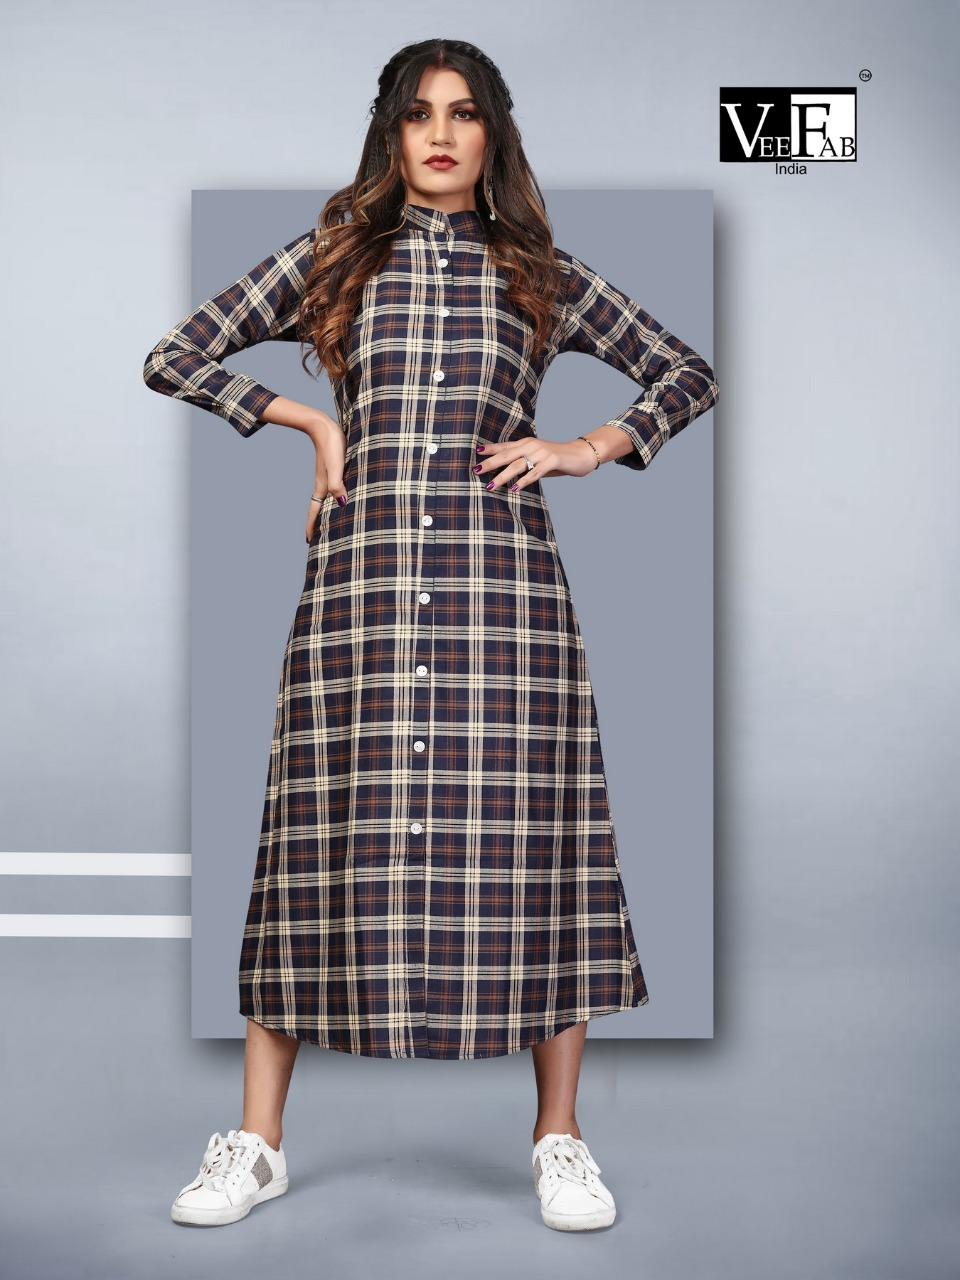 Vee Fab Winter Grace Vol 7 Kurti Wholesale Catalog 6 Pcs 2 - Vee Fab Winter Grace Vol 7 Kurti Wholesale Catalog 6 Pcs